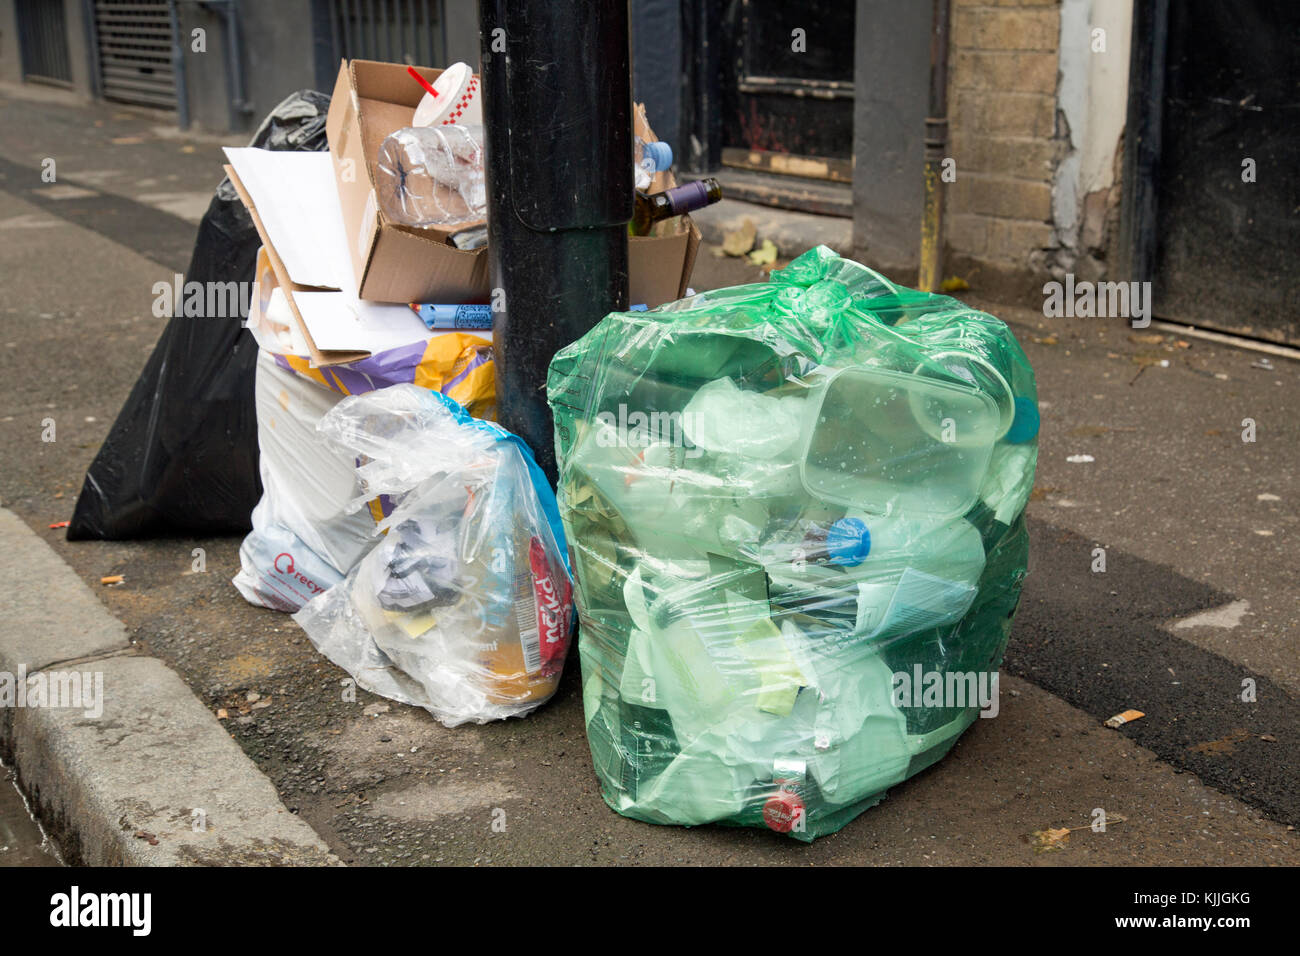 London, England, November 2017, Bags of rubbish in different colour sacks await collection on the street - Stock Image